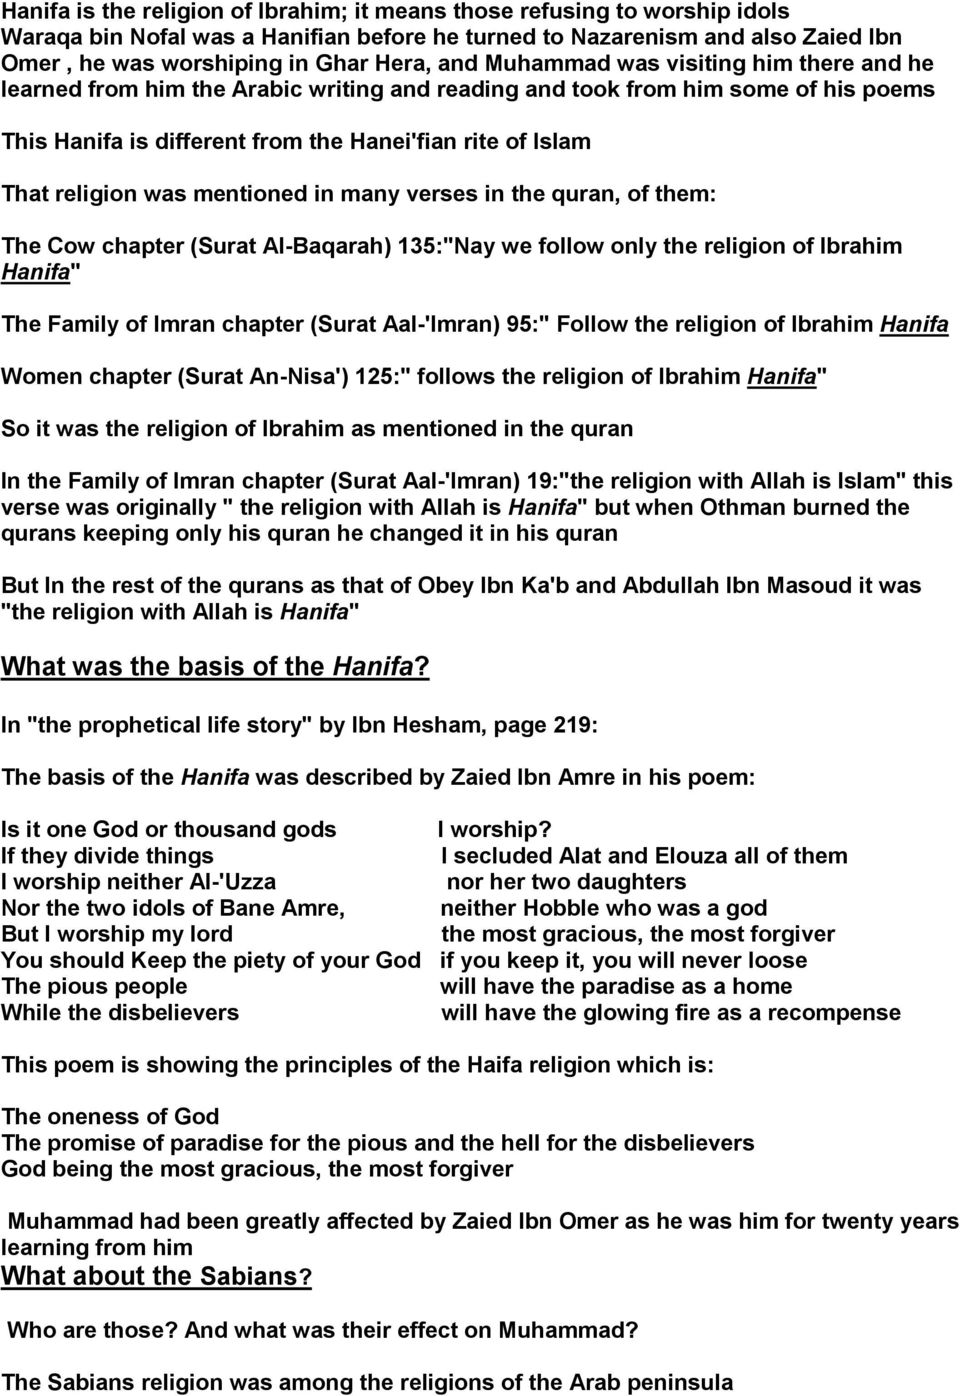 "mentioned in many verses in the quran, of them: The Cow chapter (Surat Al-Baqarah) 135:""Nay we follow only the religion of Ibrahim Hanifa"" The Family of Imran chapter (Surat Aal-'Imran) 95:"" Follow"